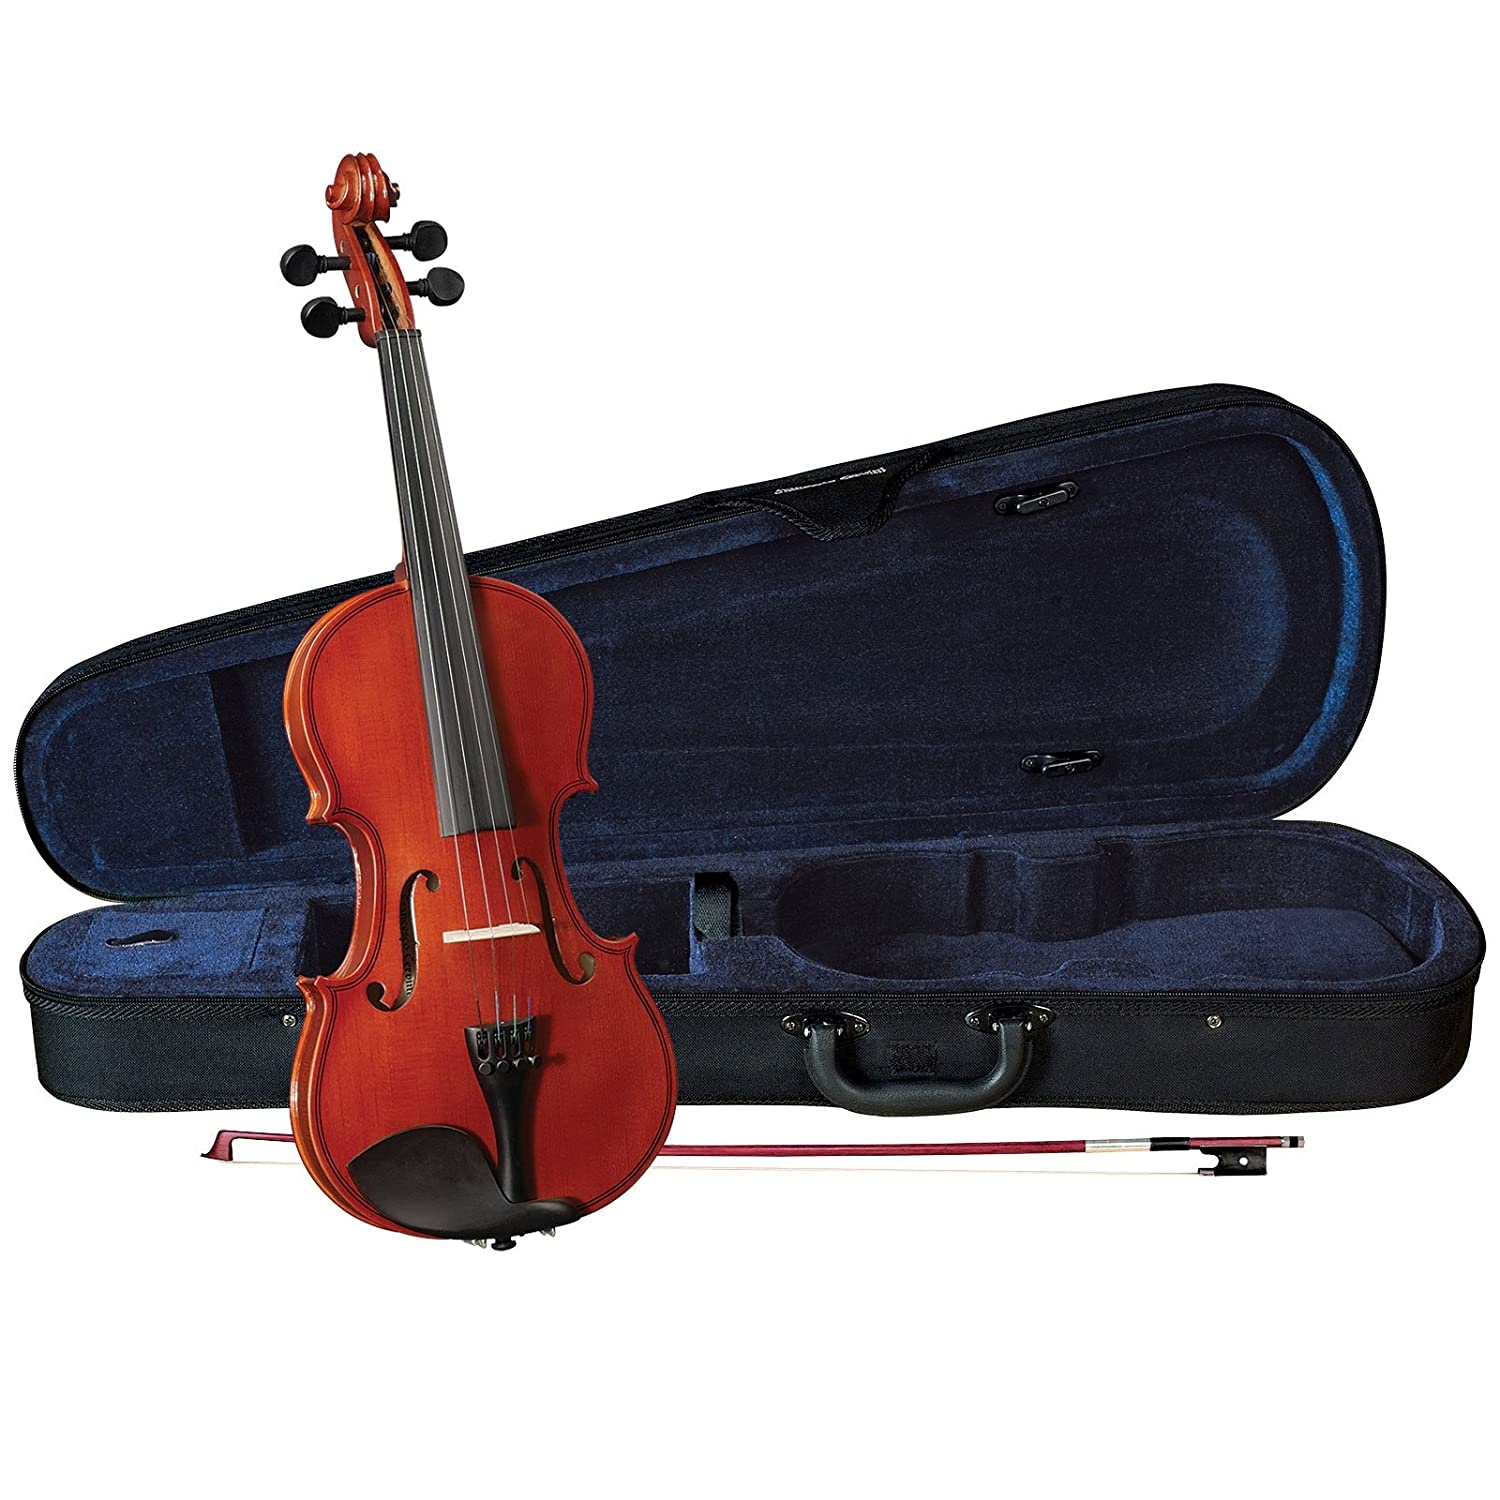 Anton Breton AB-01 Student Violin Outfit - Traditional Red - 4/4 Size A. Breton